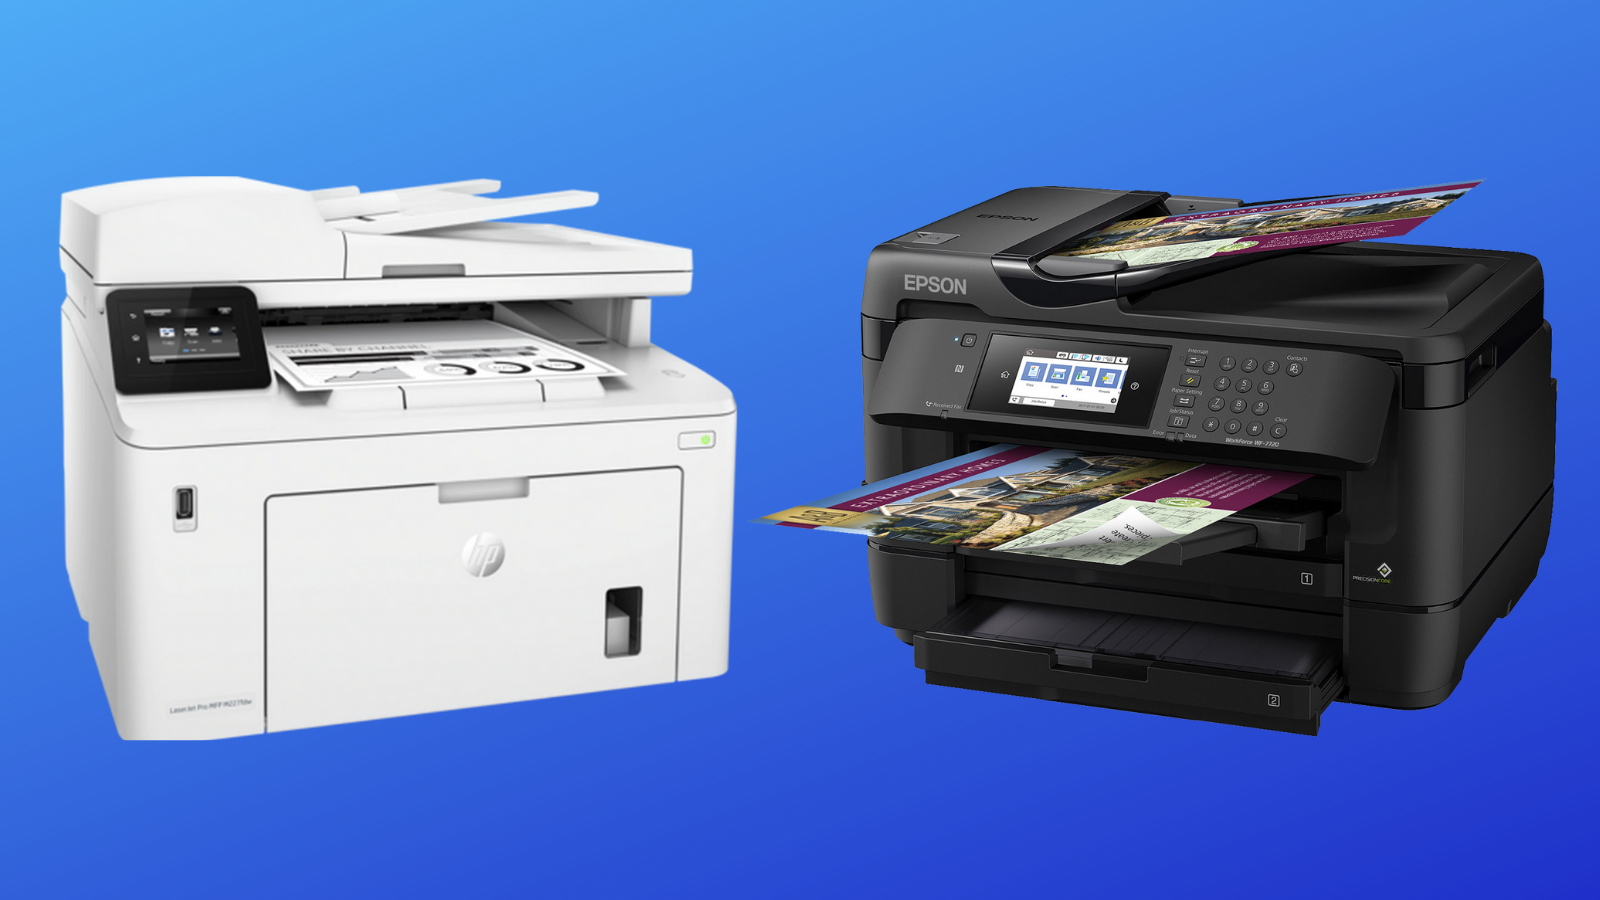 The Best Multifunction Printers To Buy In 2020 For All Document Needs